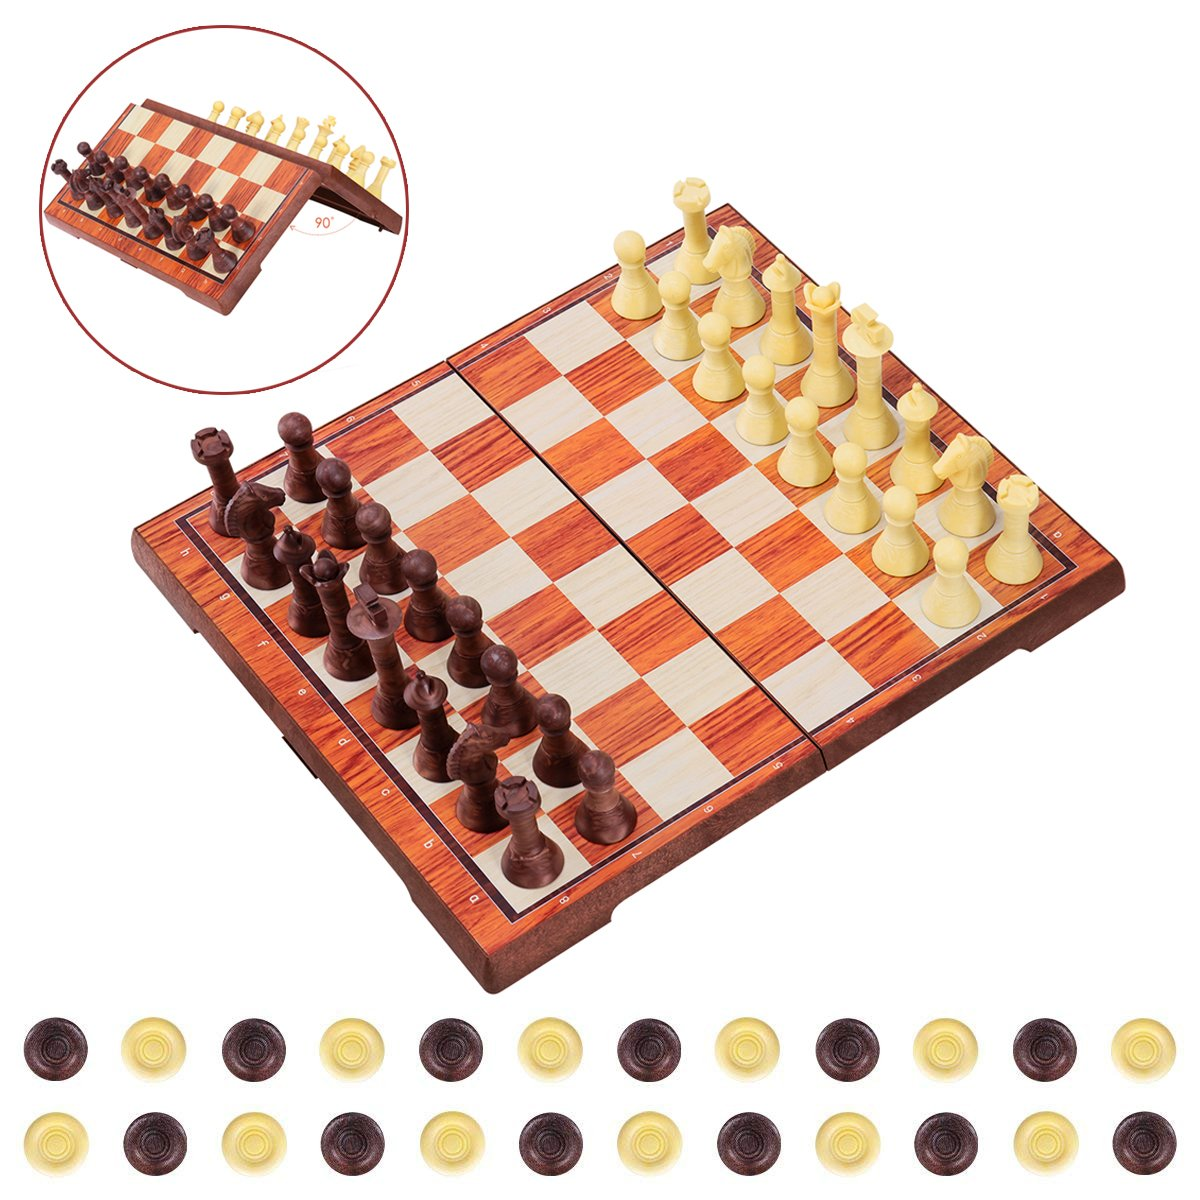 "iBaseToy Magnetic Chess Set 2 in 1 Chess Checkers Set Adults Kids Traditional Chess Game Set Folding Chess Board – 14"" x 12"""